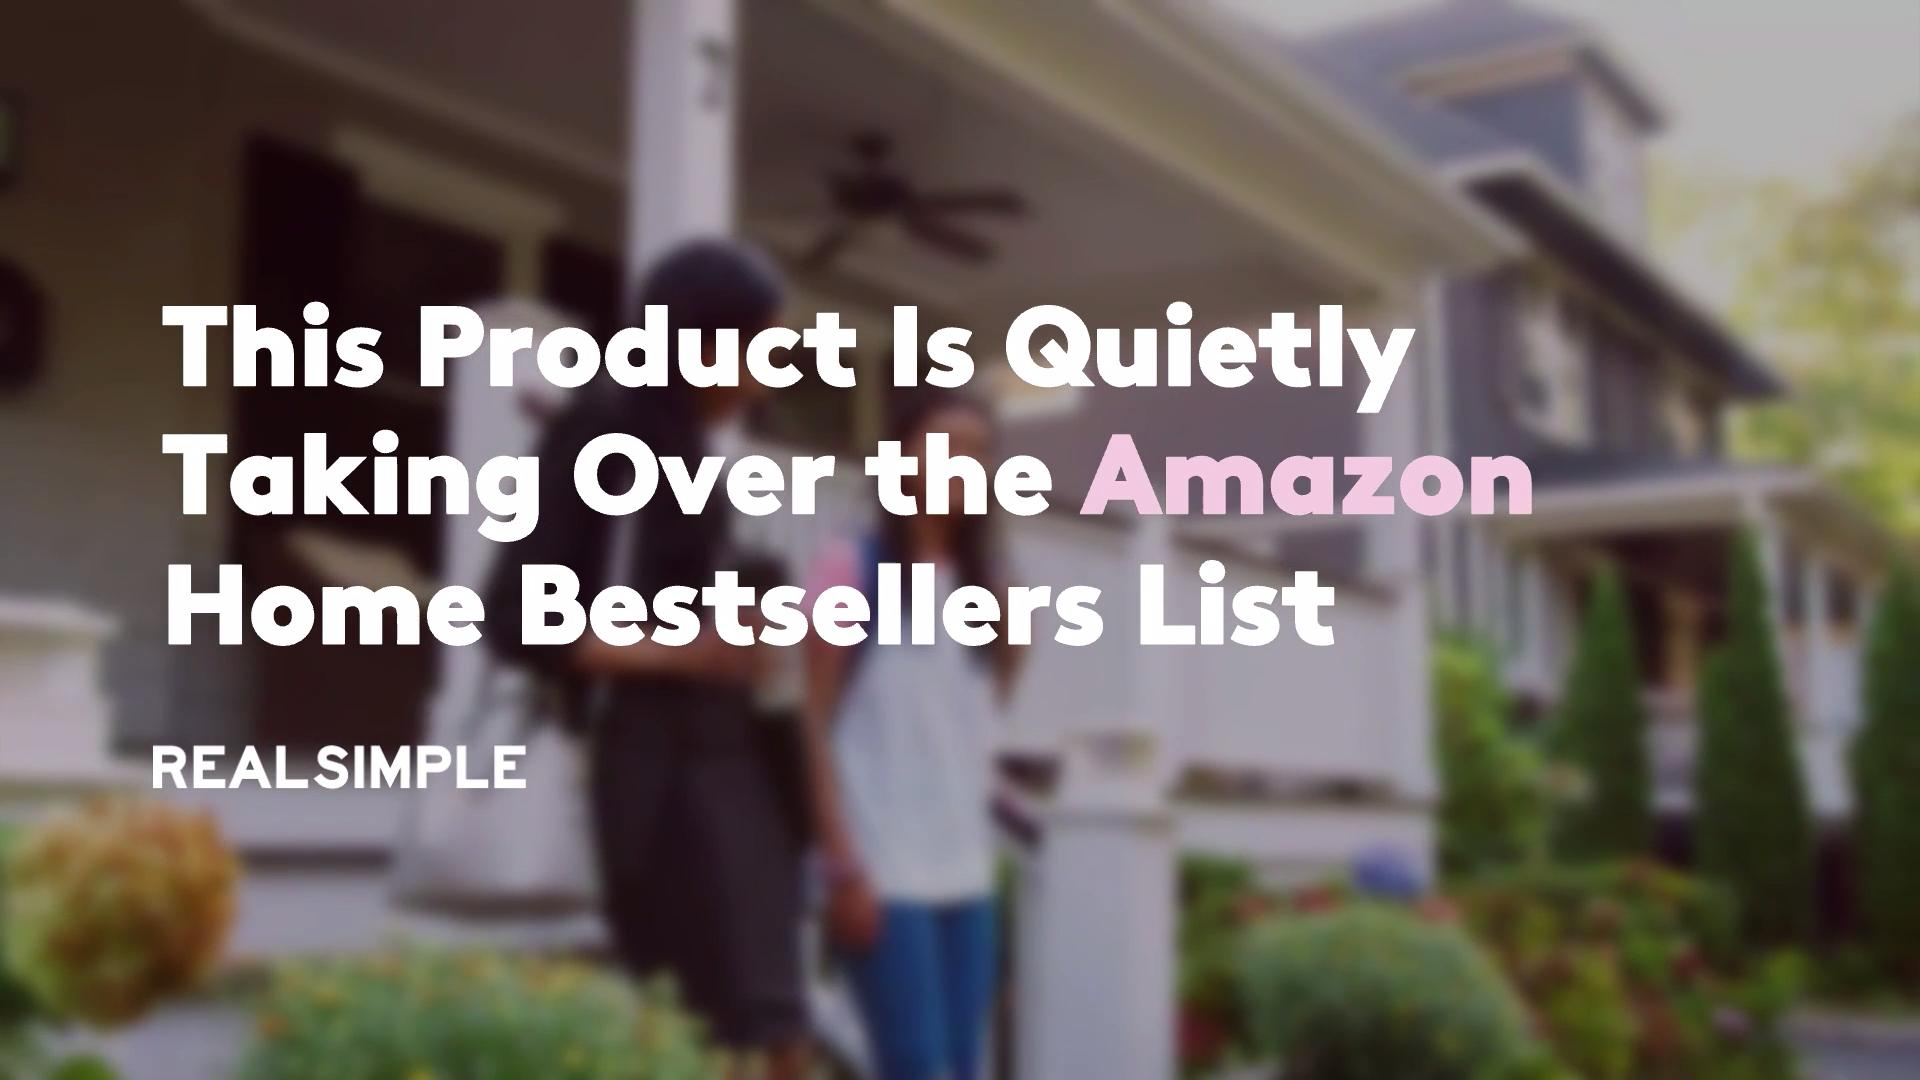 This Product Is Quietly Taking Over the Amazon Home Bestsellers List